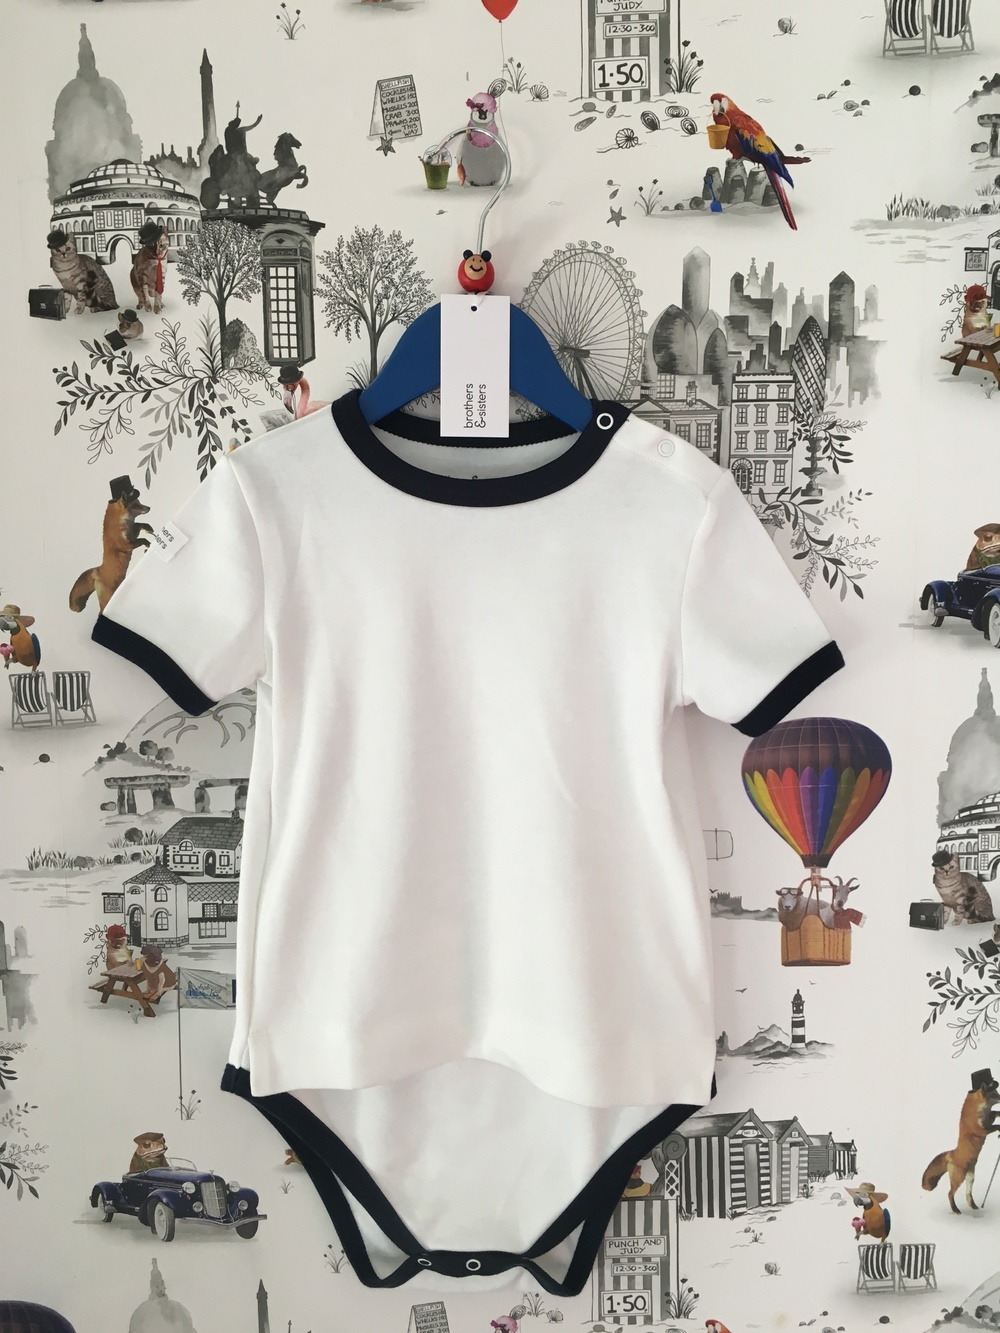 White with Navy edge   from  £13  sizes 3-4yrs/5-6yrs/7-8yrs/9-10yrs